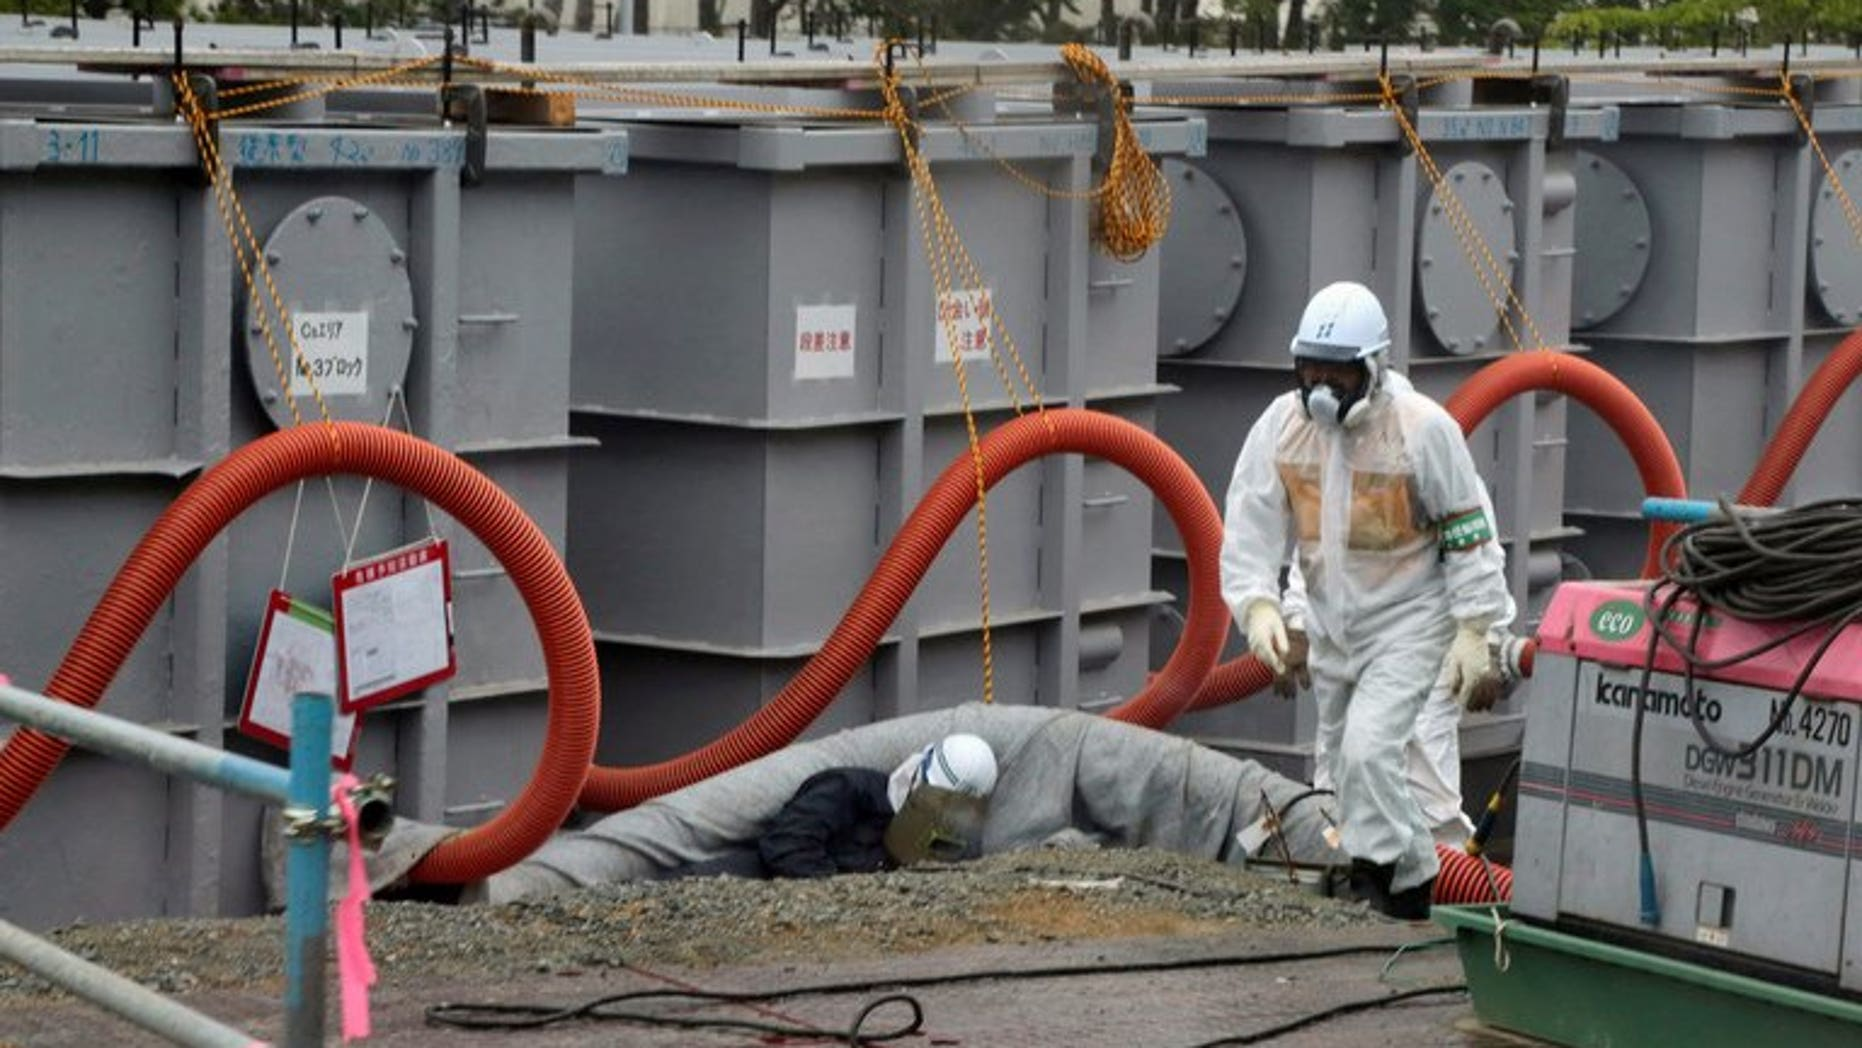 Workers at the Fukushima nuclear plant on June 12, 2013. Toxic radioactive substances in groundwater at the crippled plant have rocketed over the past three days, its operator said, admitting it did not know where the leak was coming from.